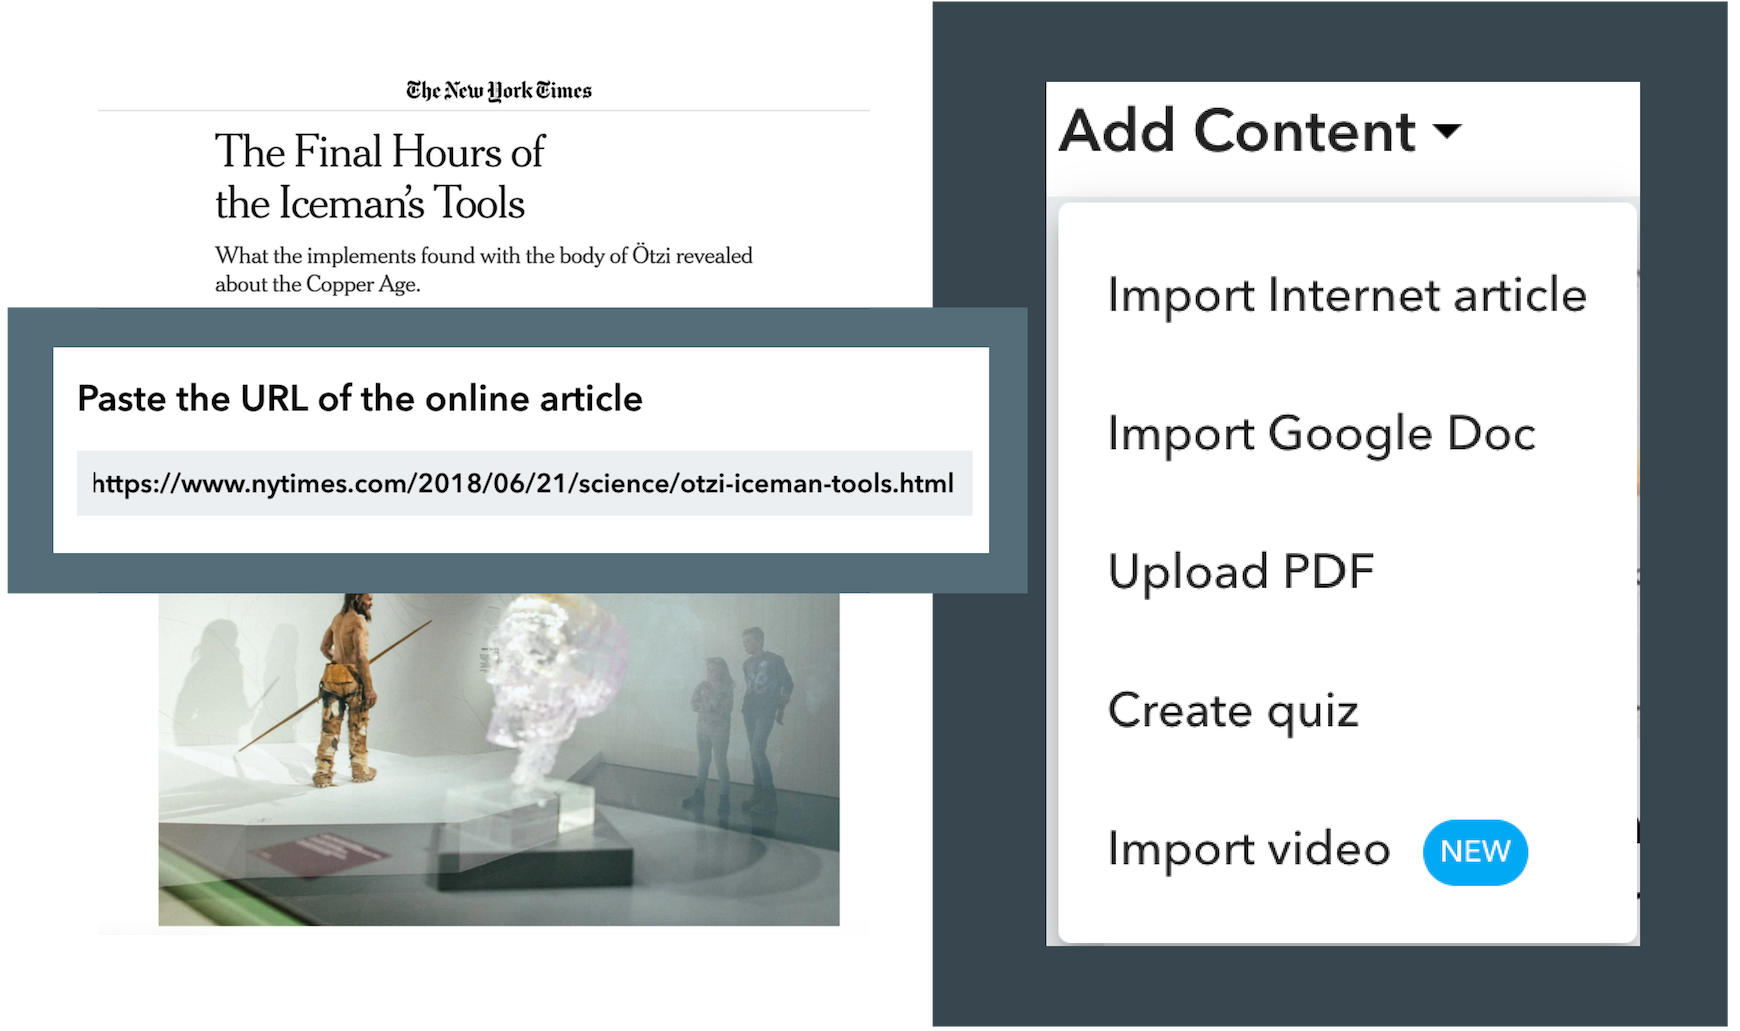 Instructions for easily importing an Internet article, importing a Google Doc, uploading a PDF, creating a quiz, and importing a video